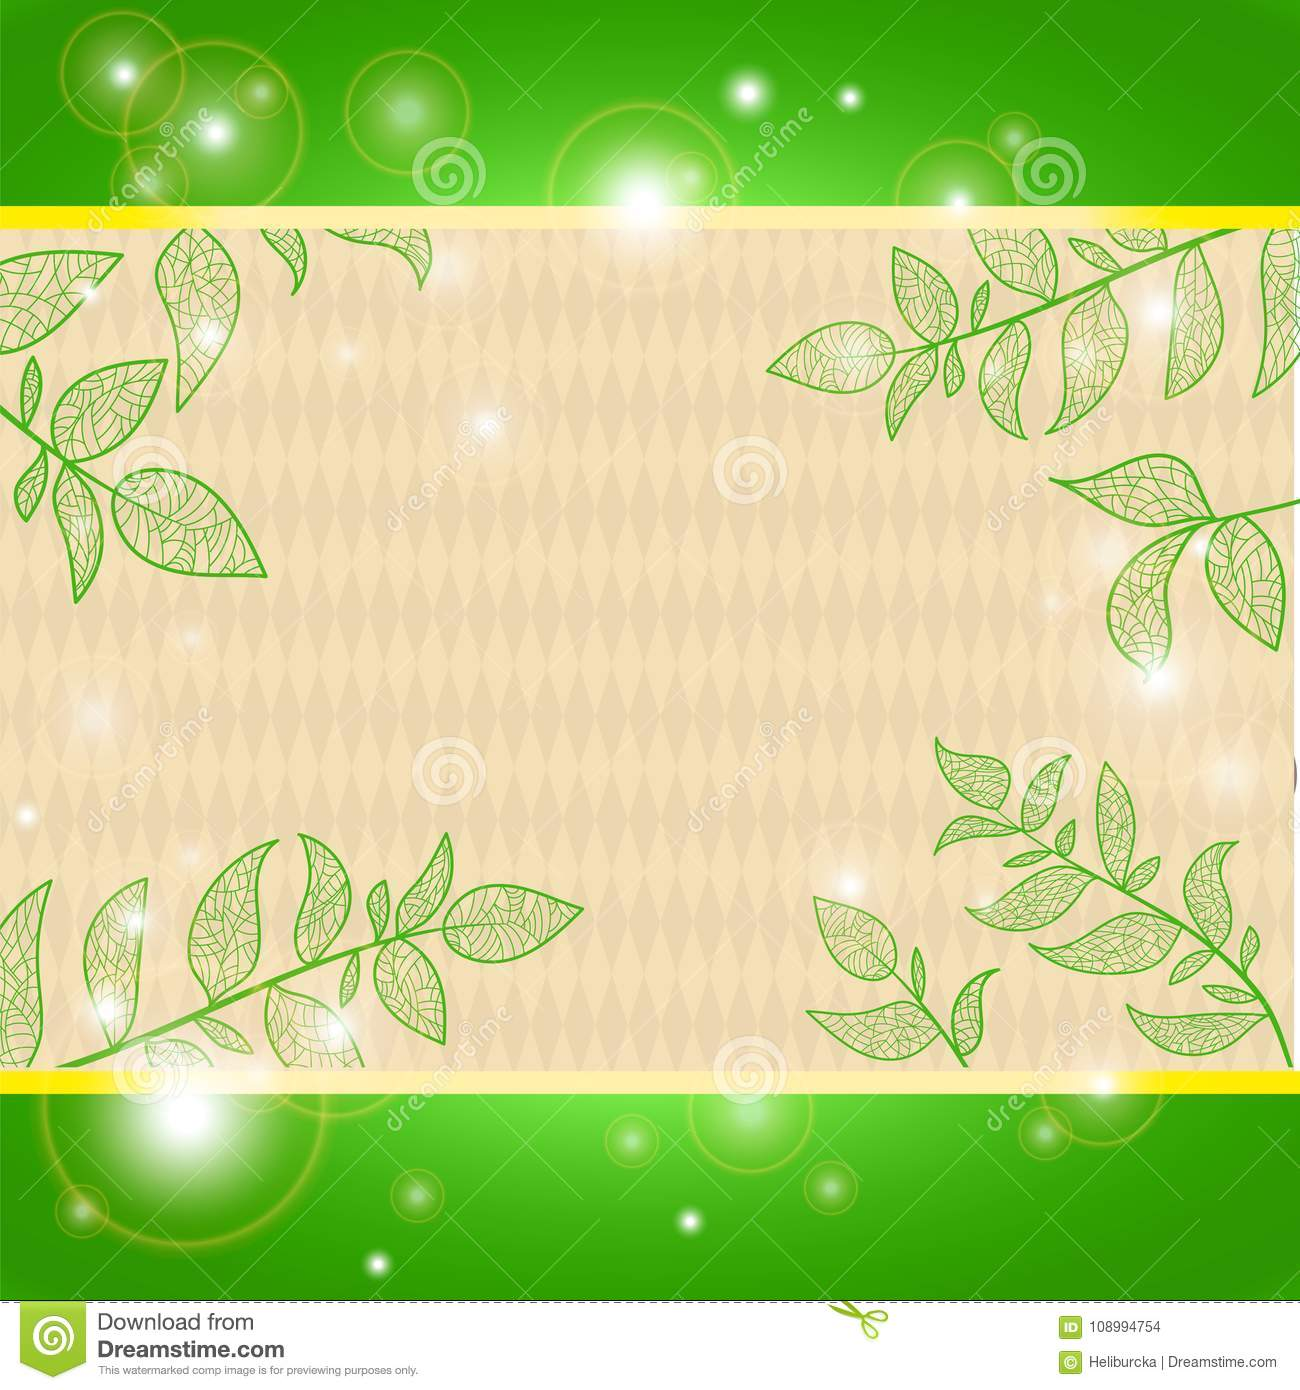 Background With Branches And Leaves Stock Illustration